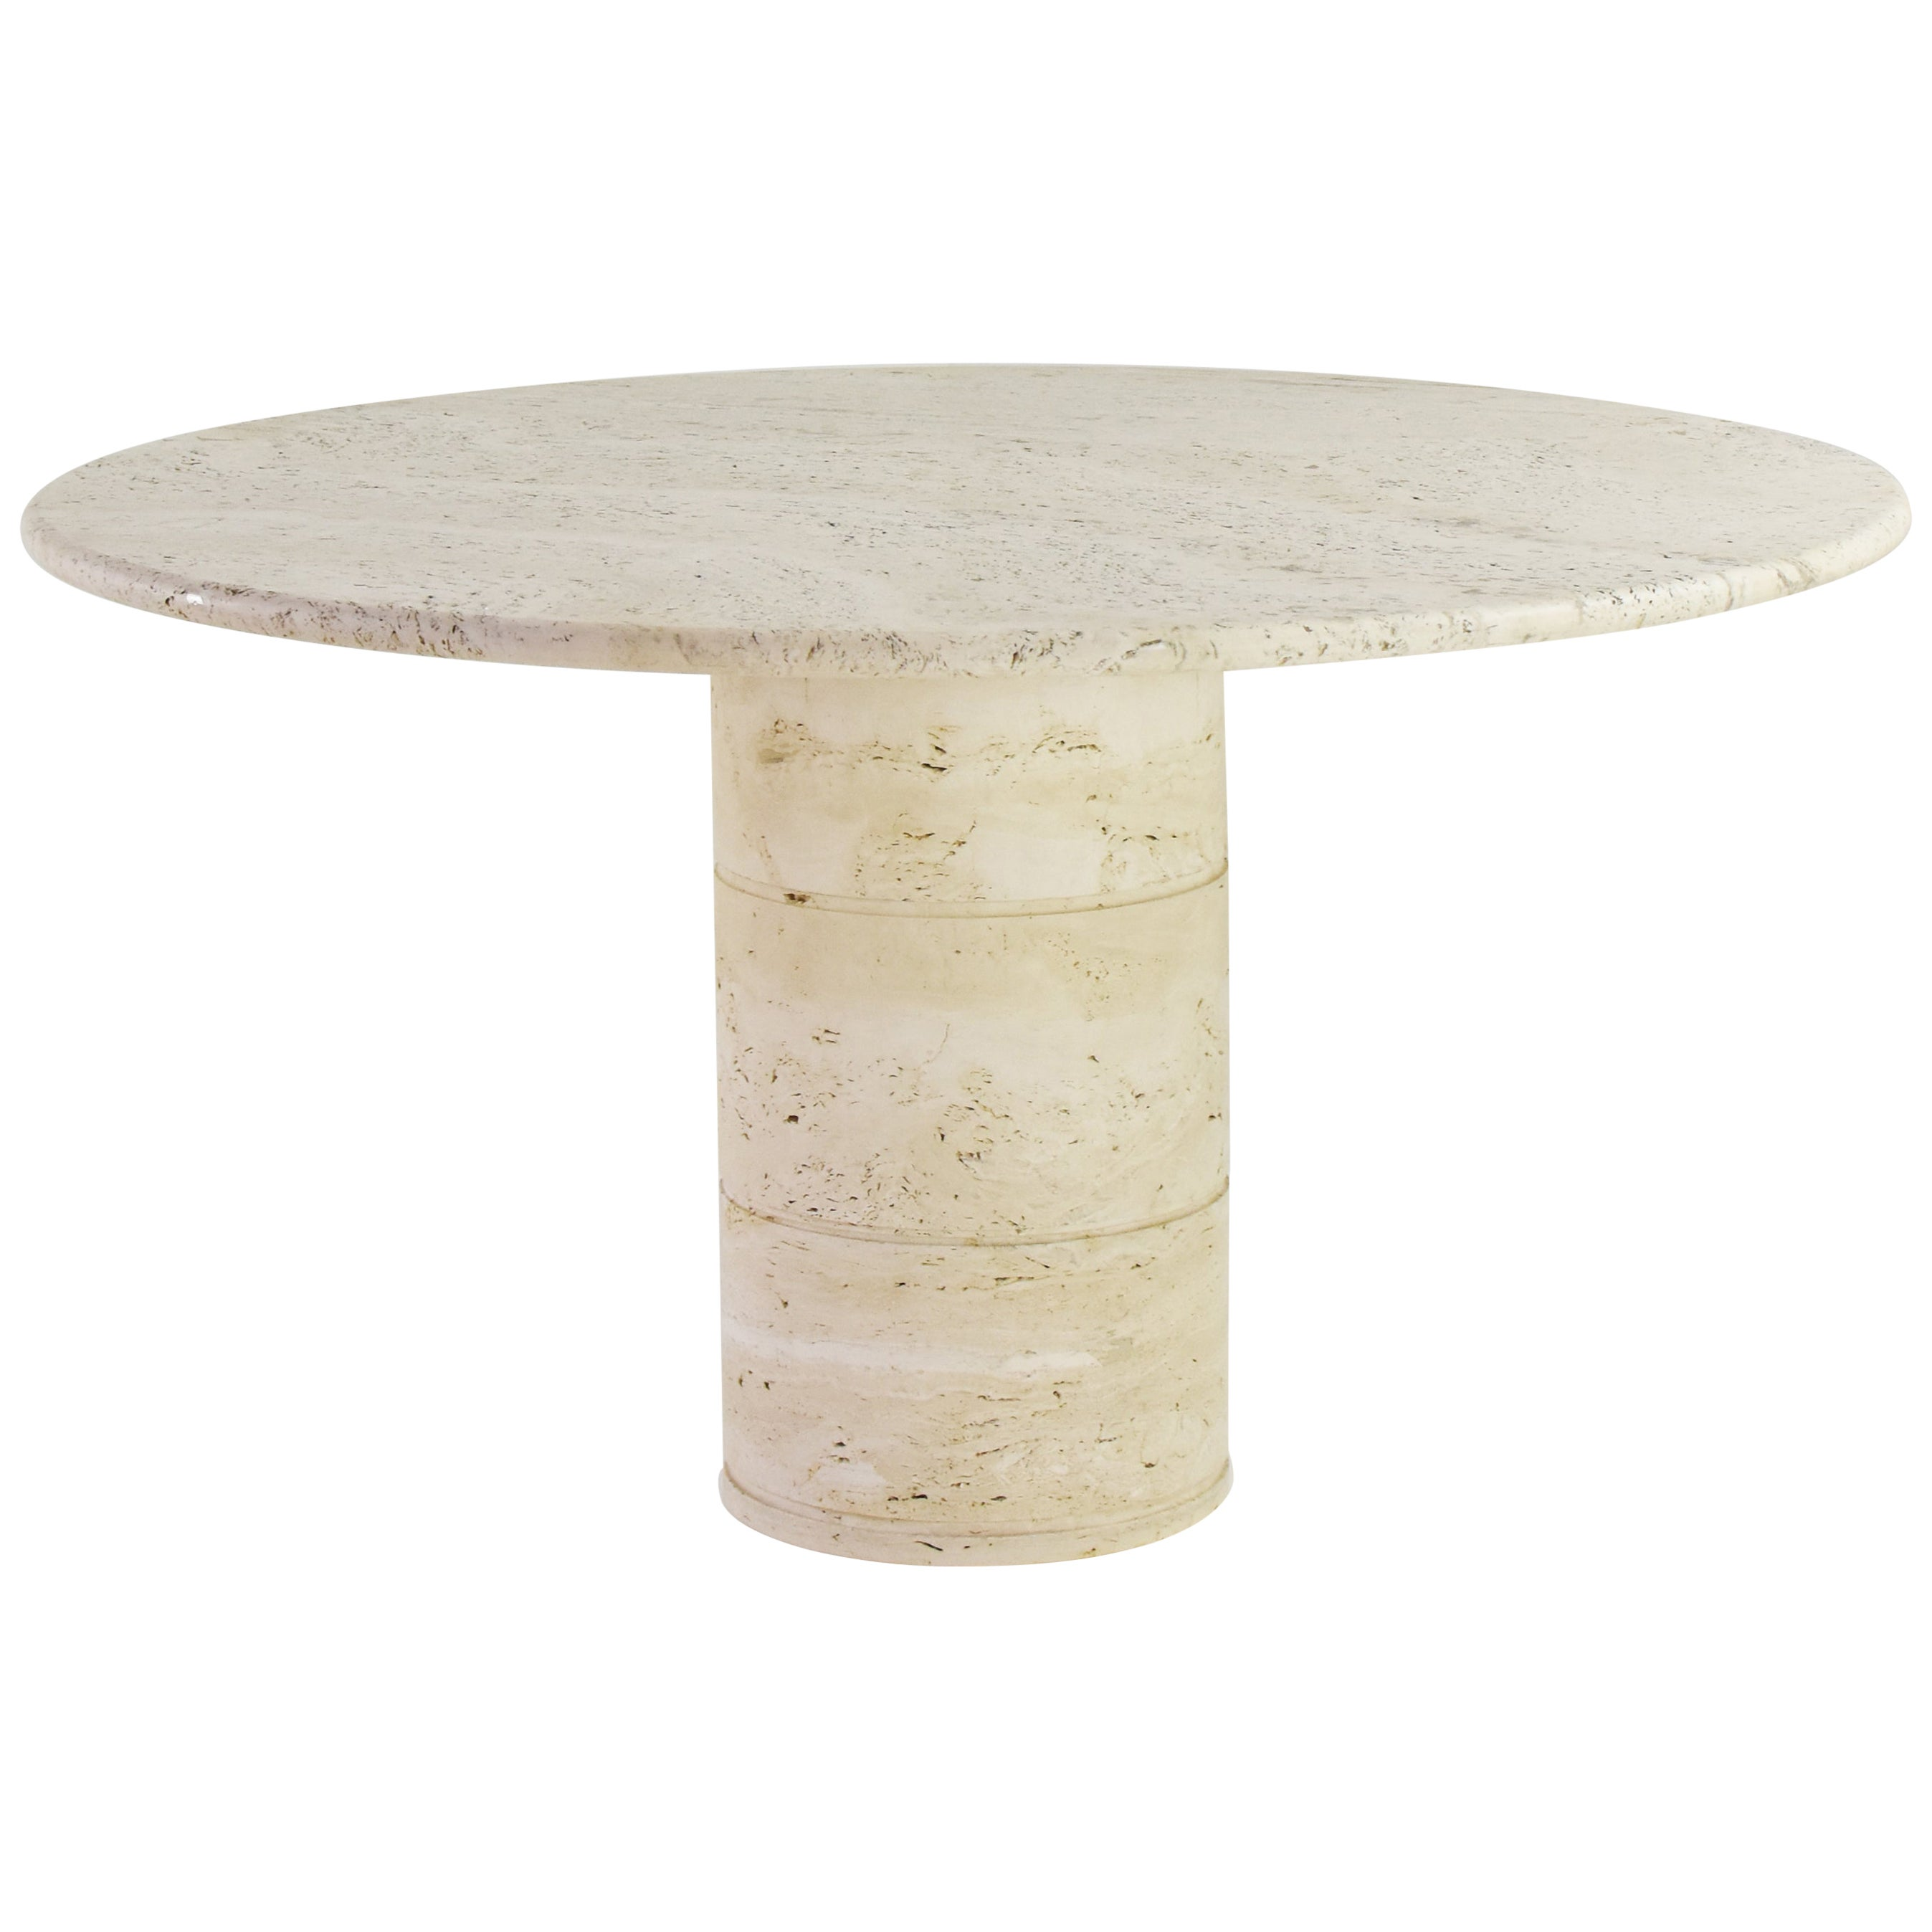 Travertine Dining Table, Italy, 1970s